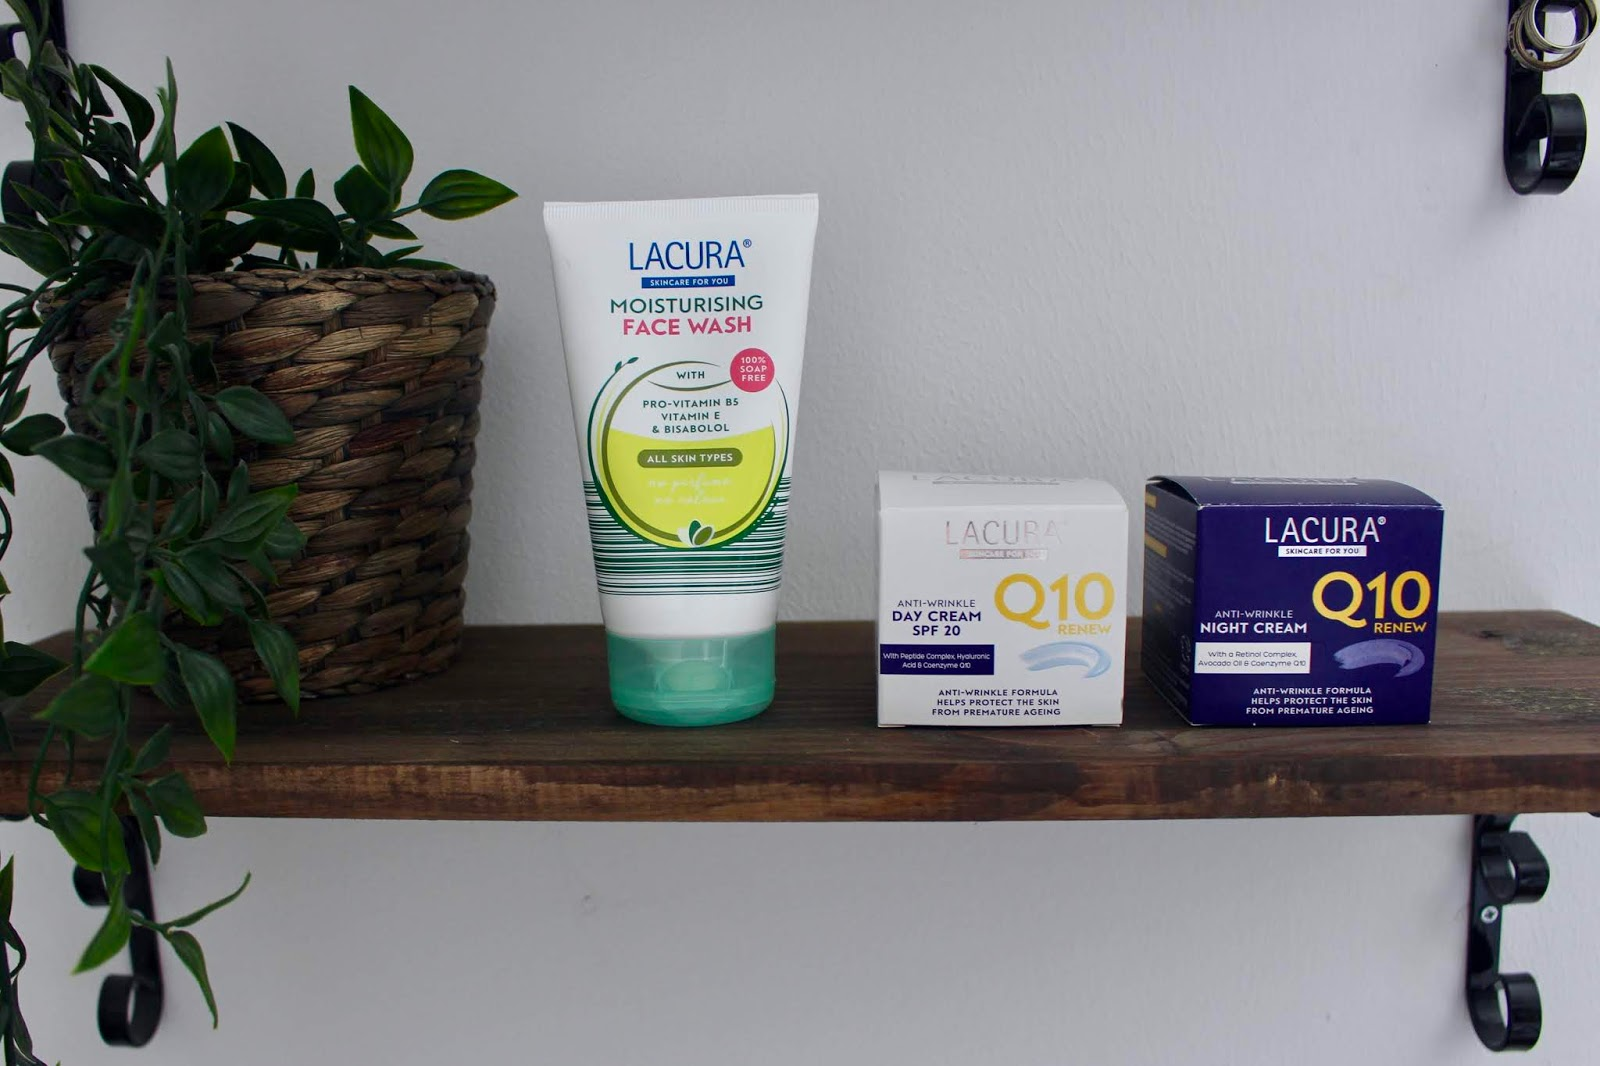 Lacura skincare products,